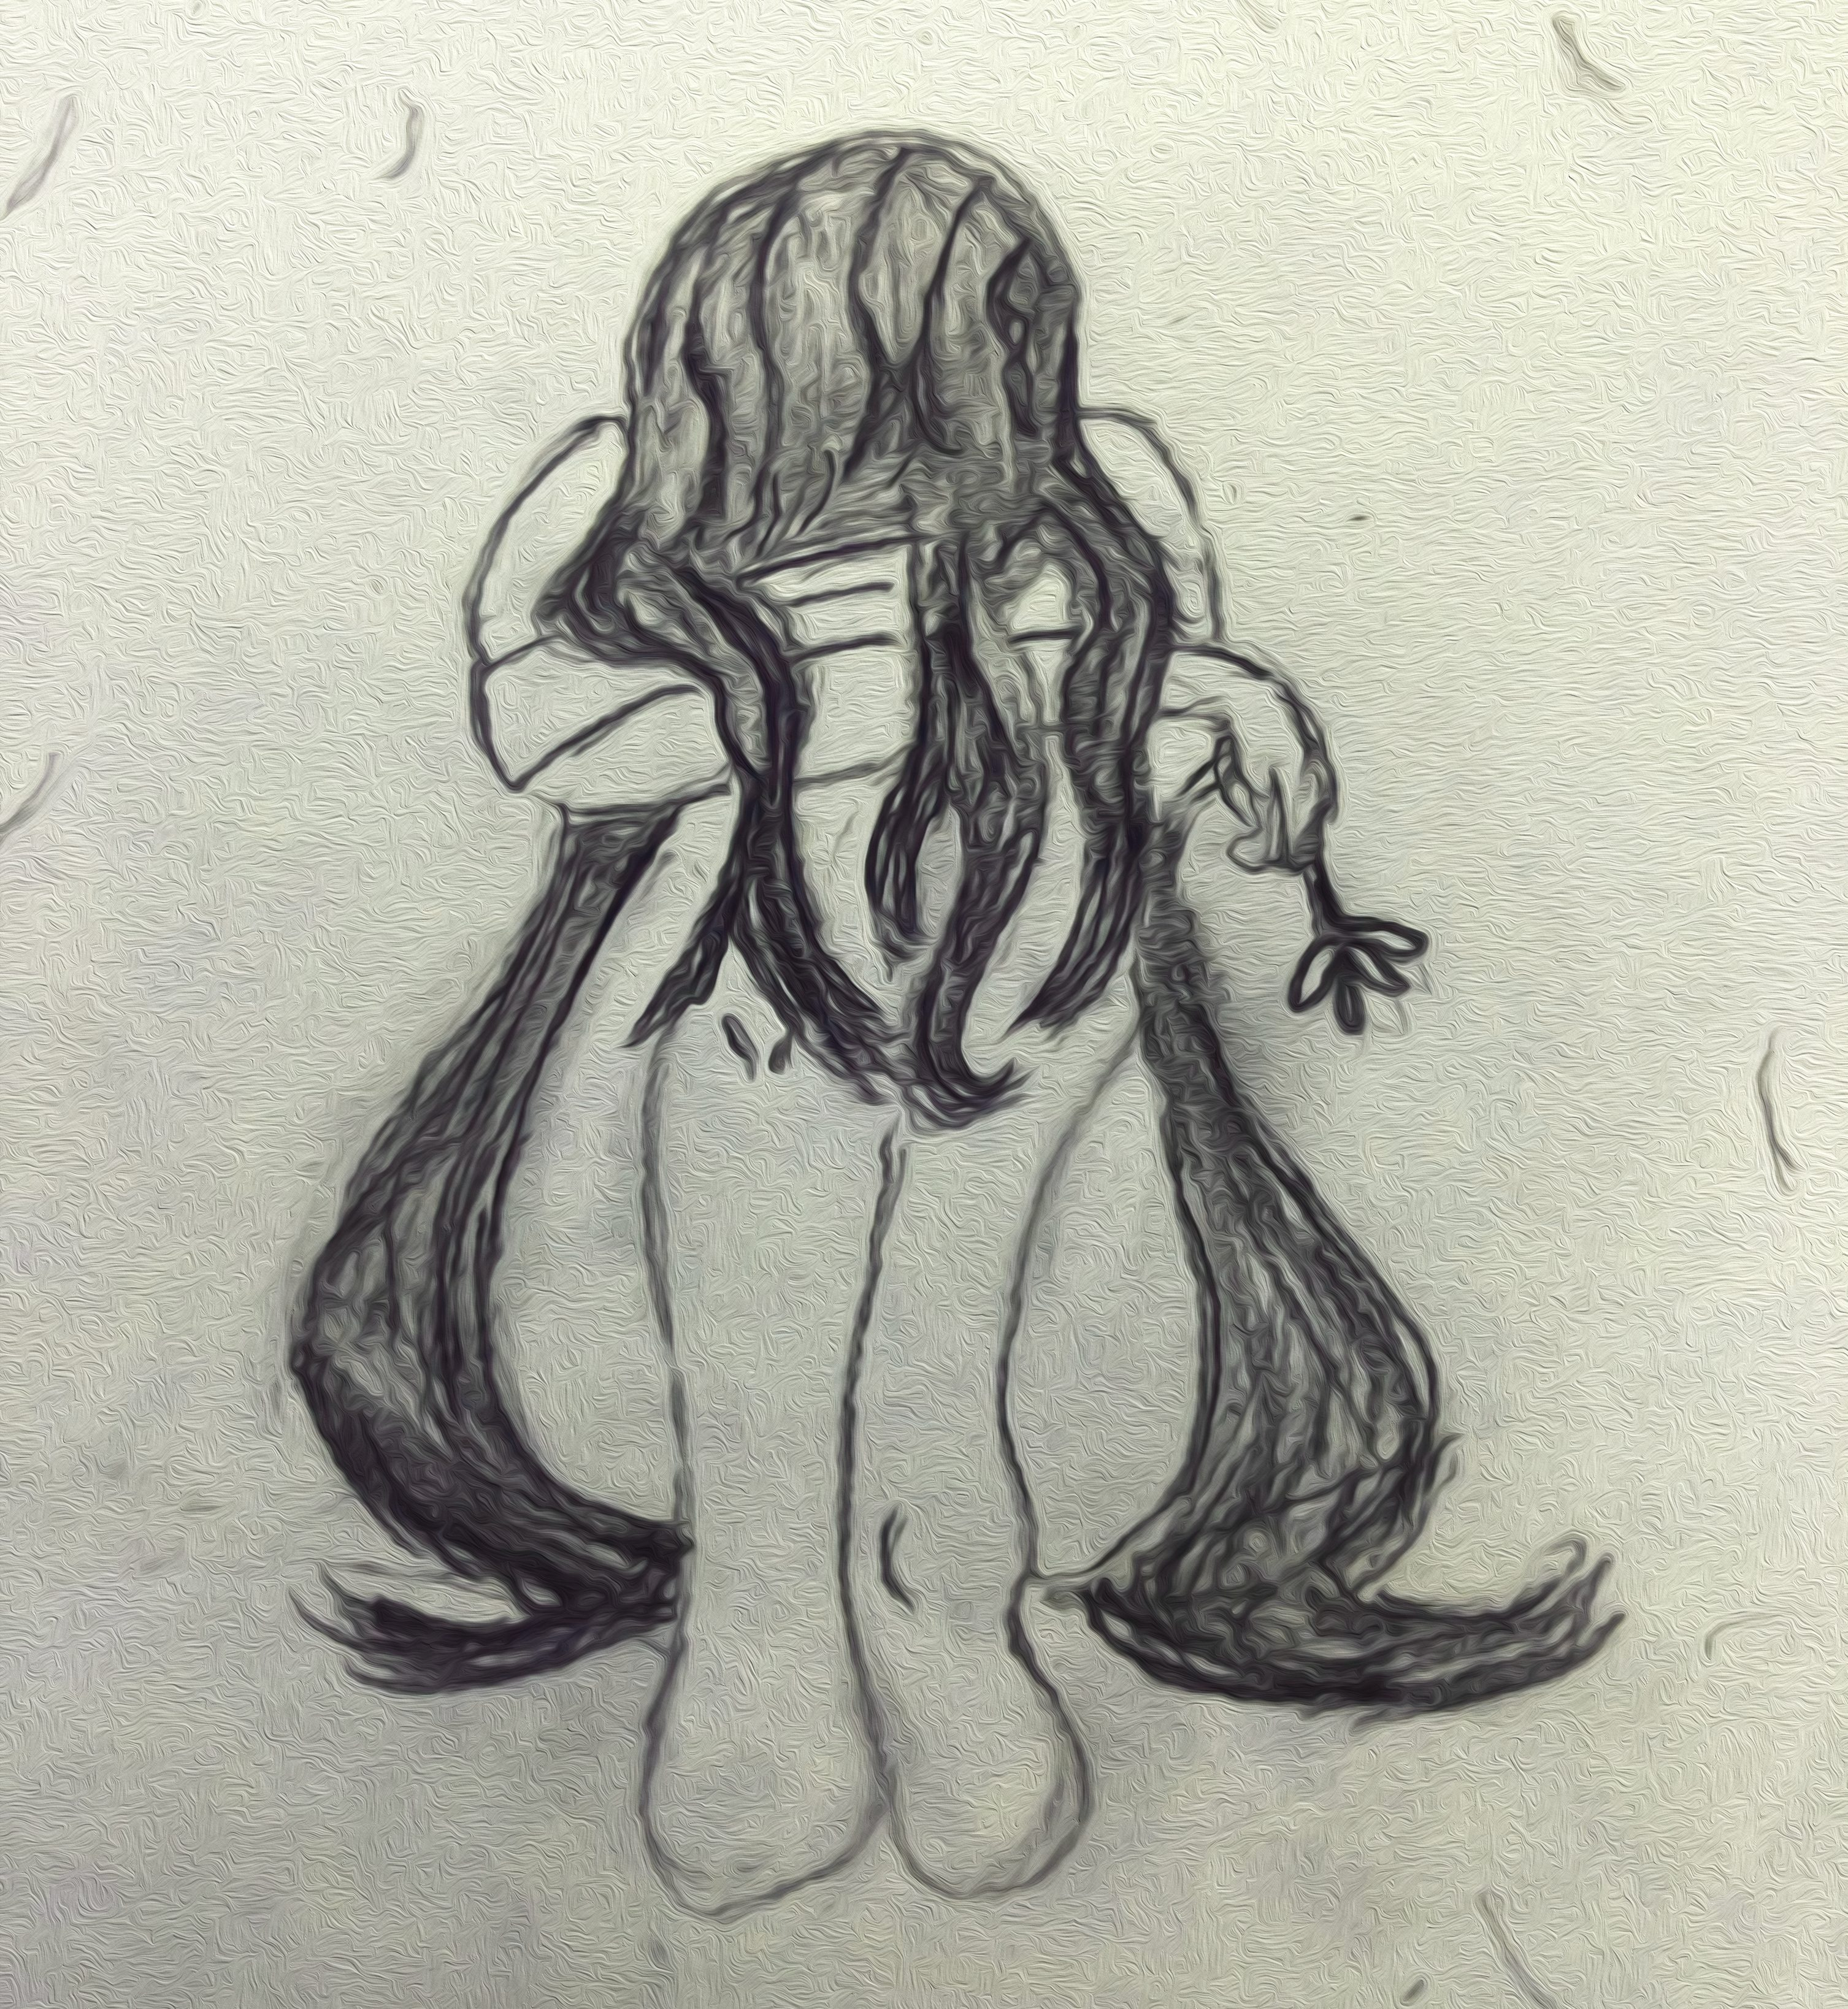 Sketch of a woman crying